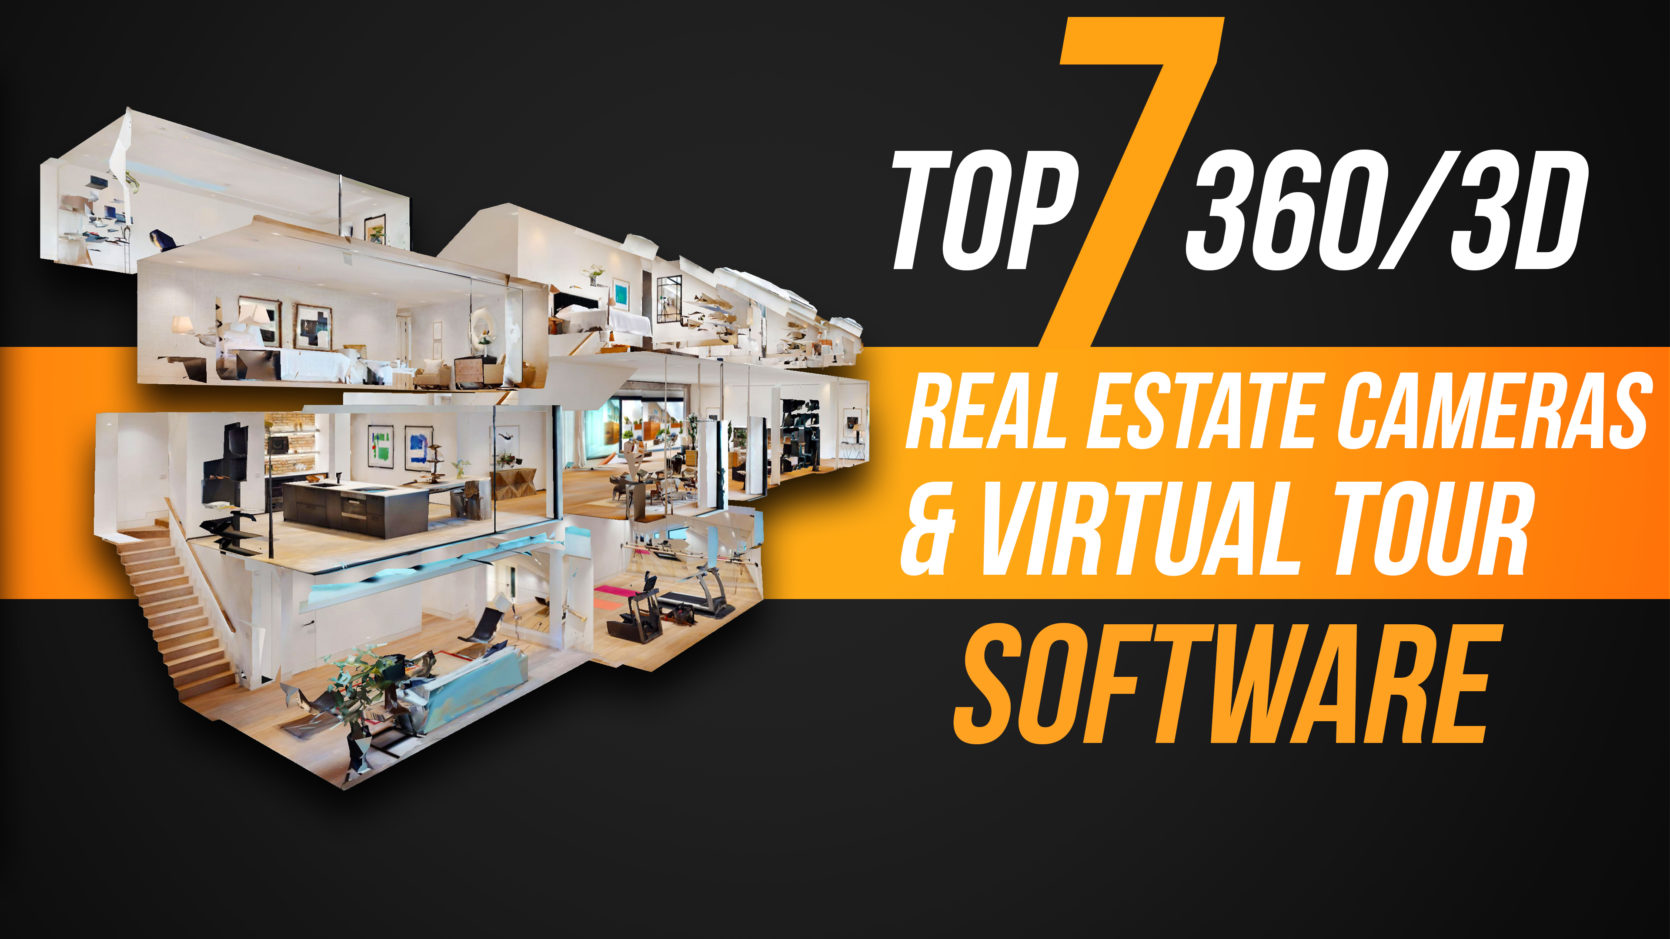 Top 7 360 Real Estate Cameras & Virtual Tour Software